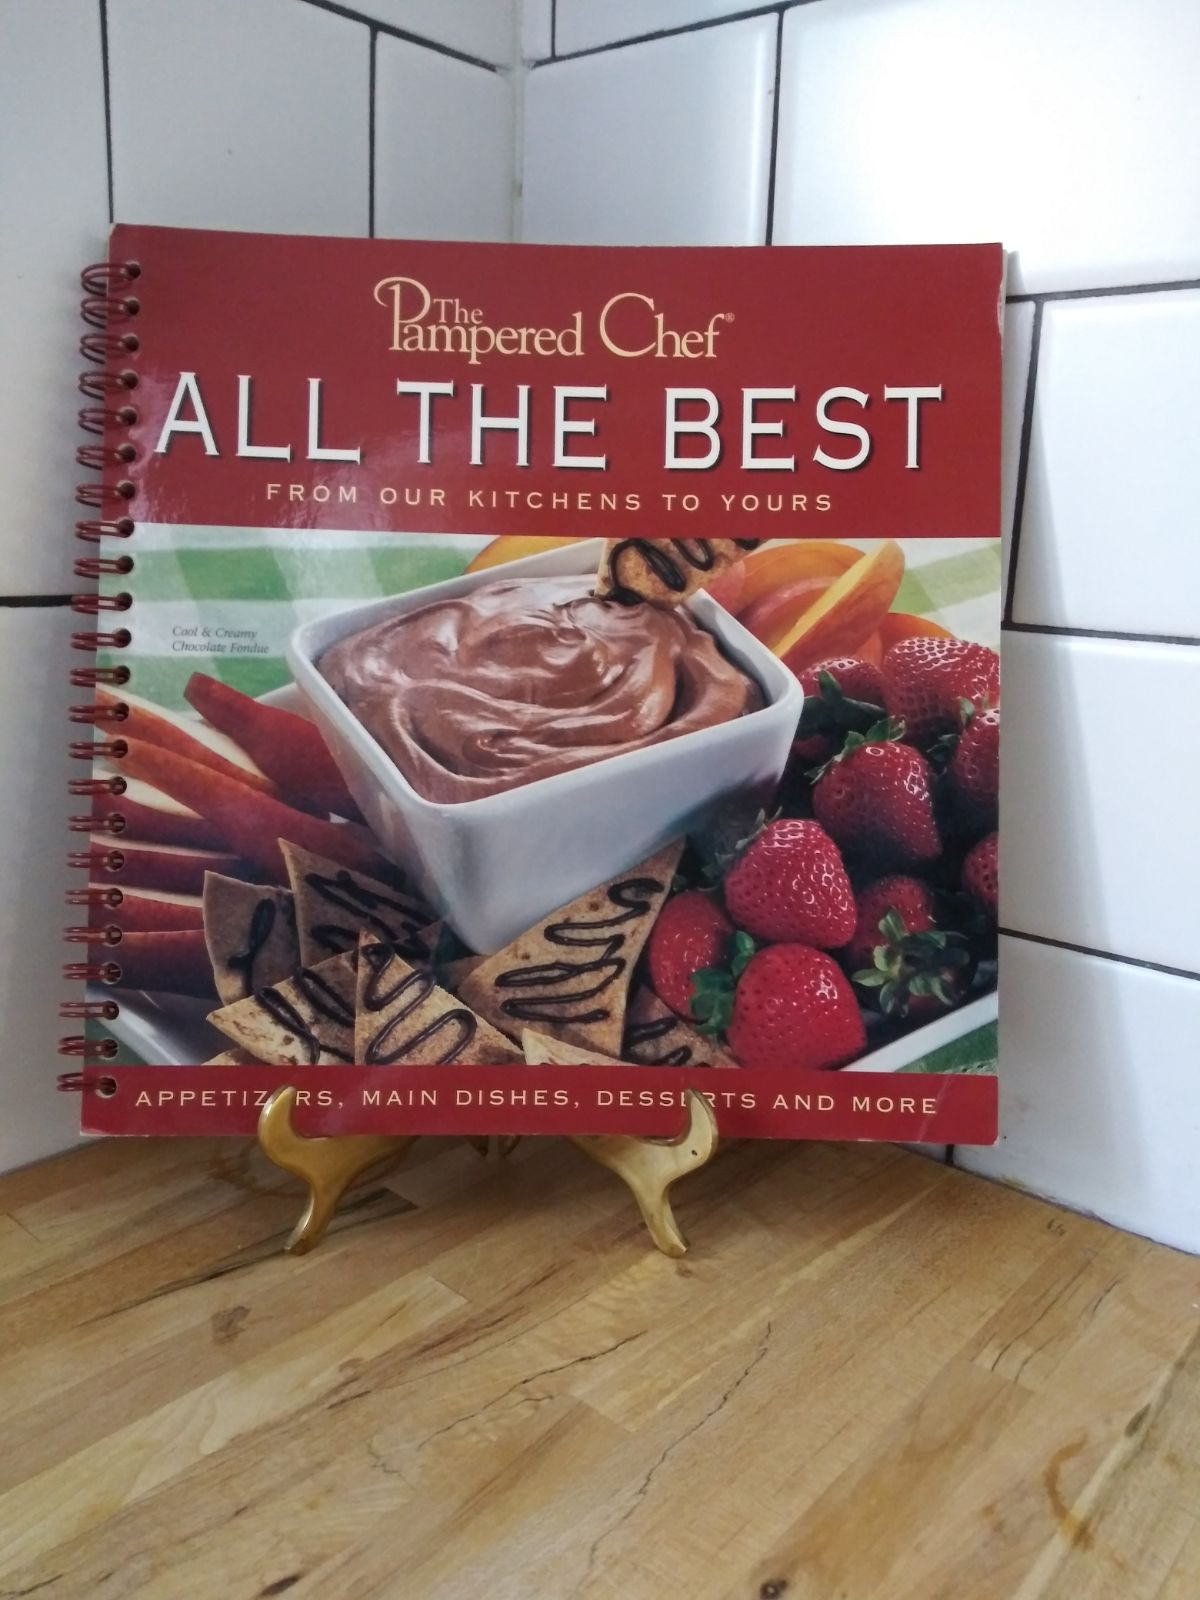 All The Best Cookbook The Pampered Chef